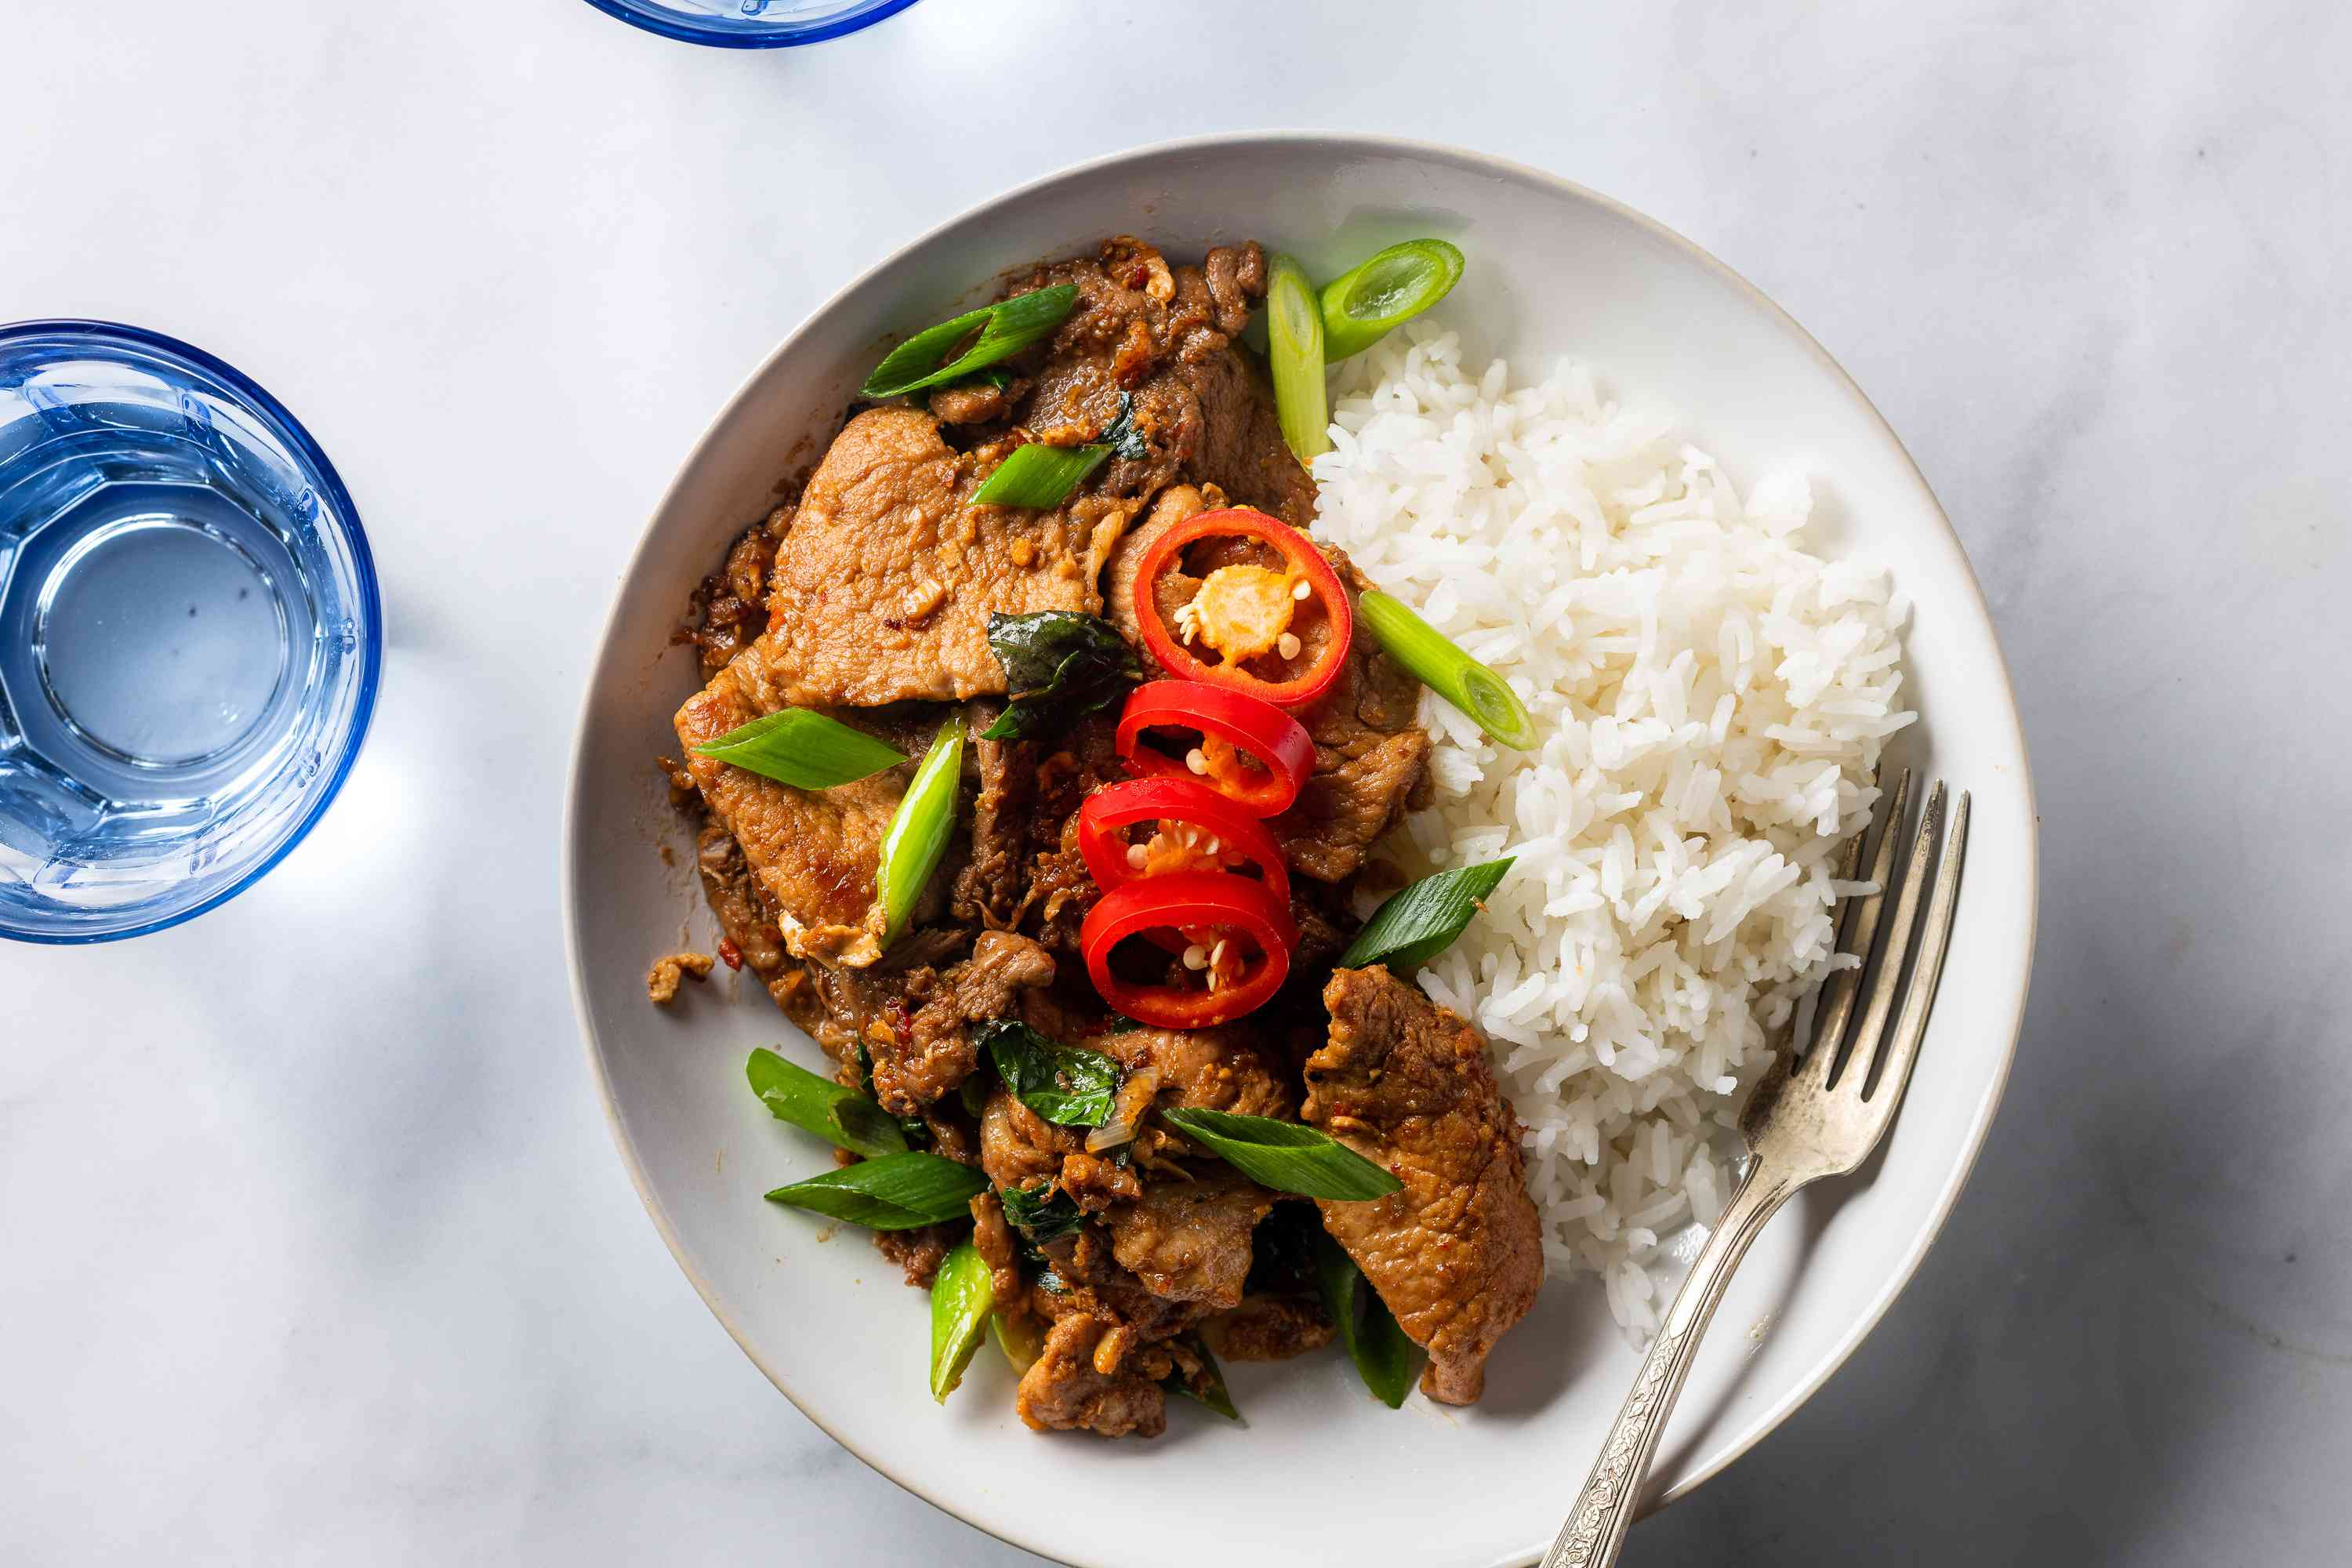 Thai basil pork with rice on the side on a plate with a fork